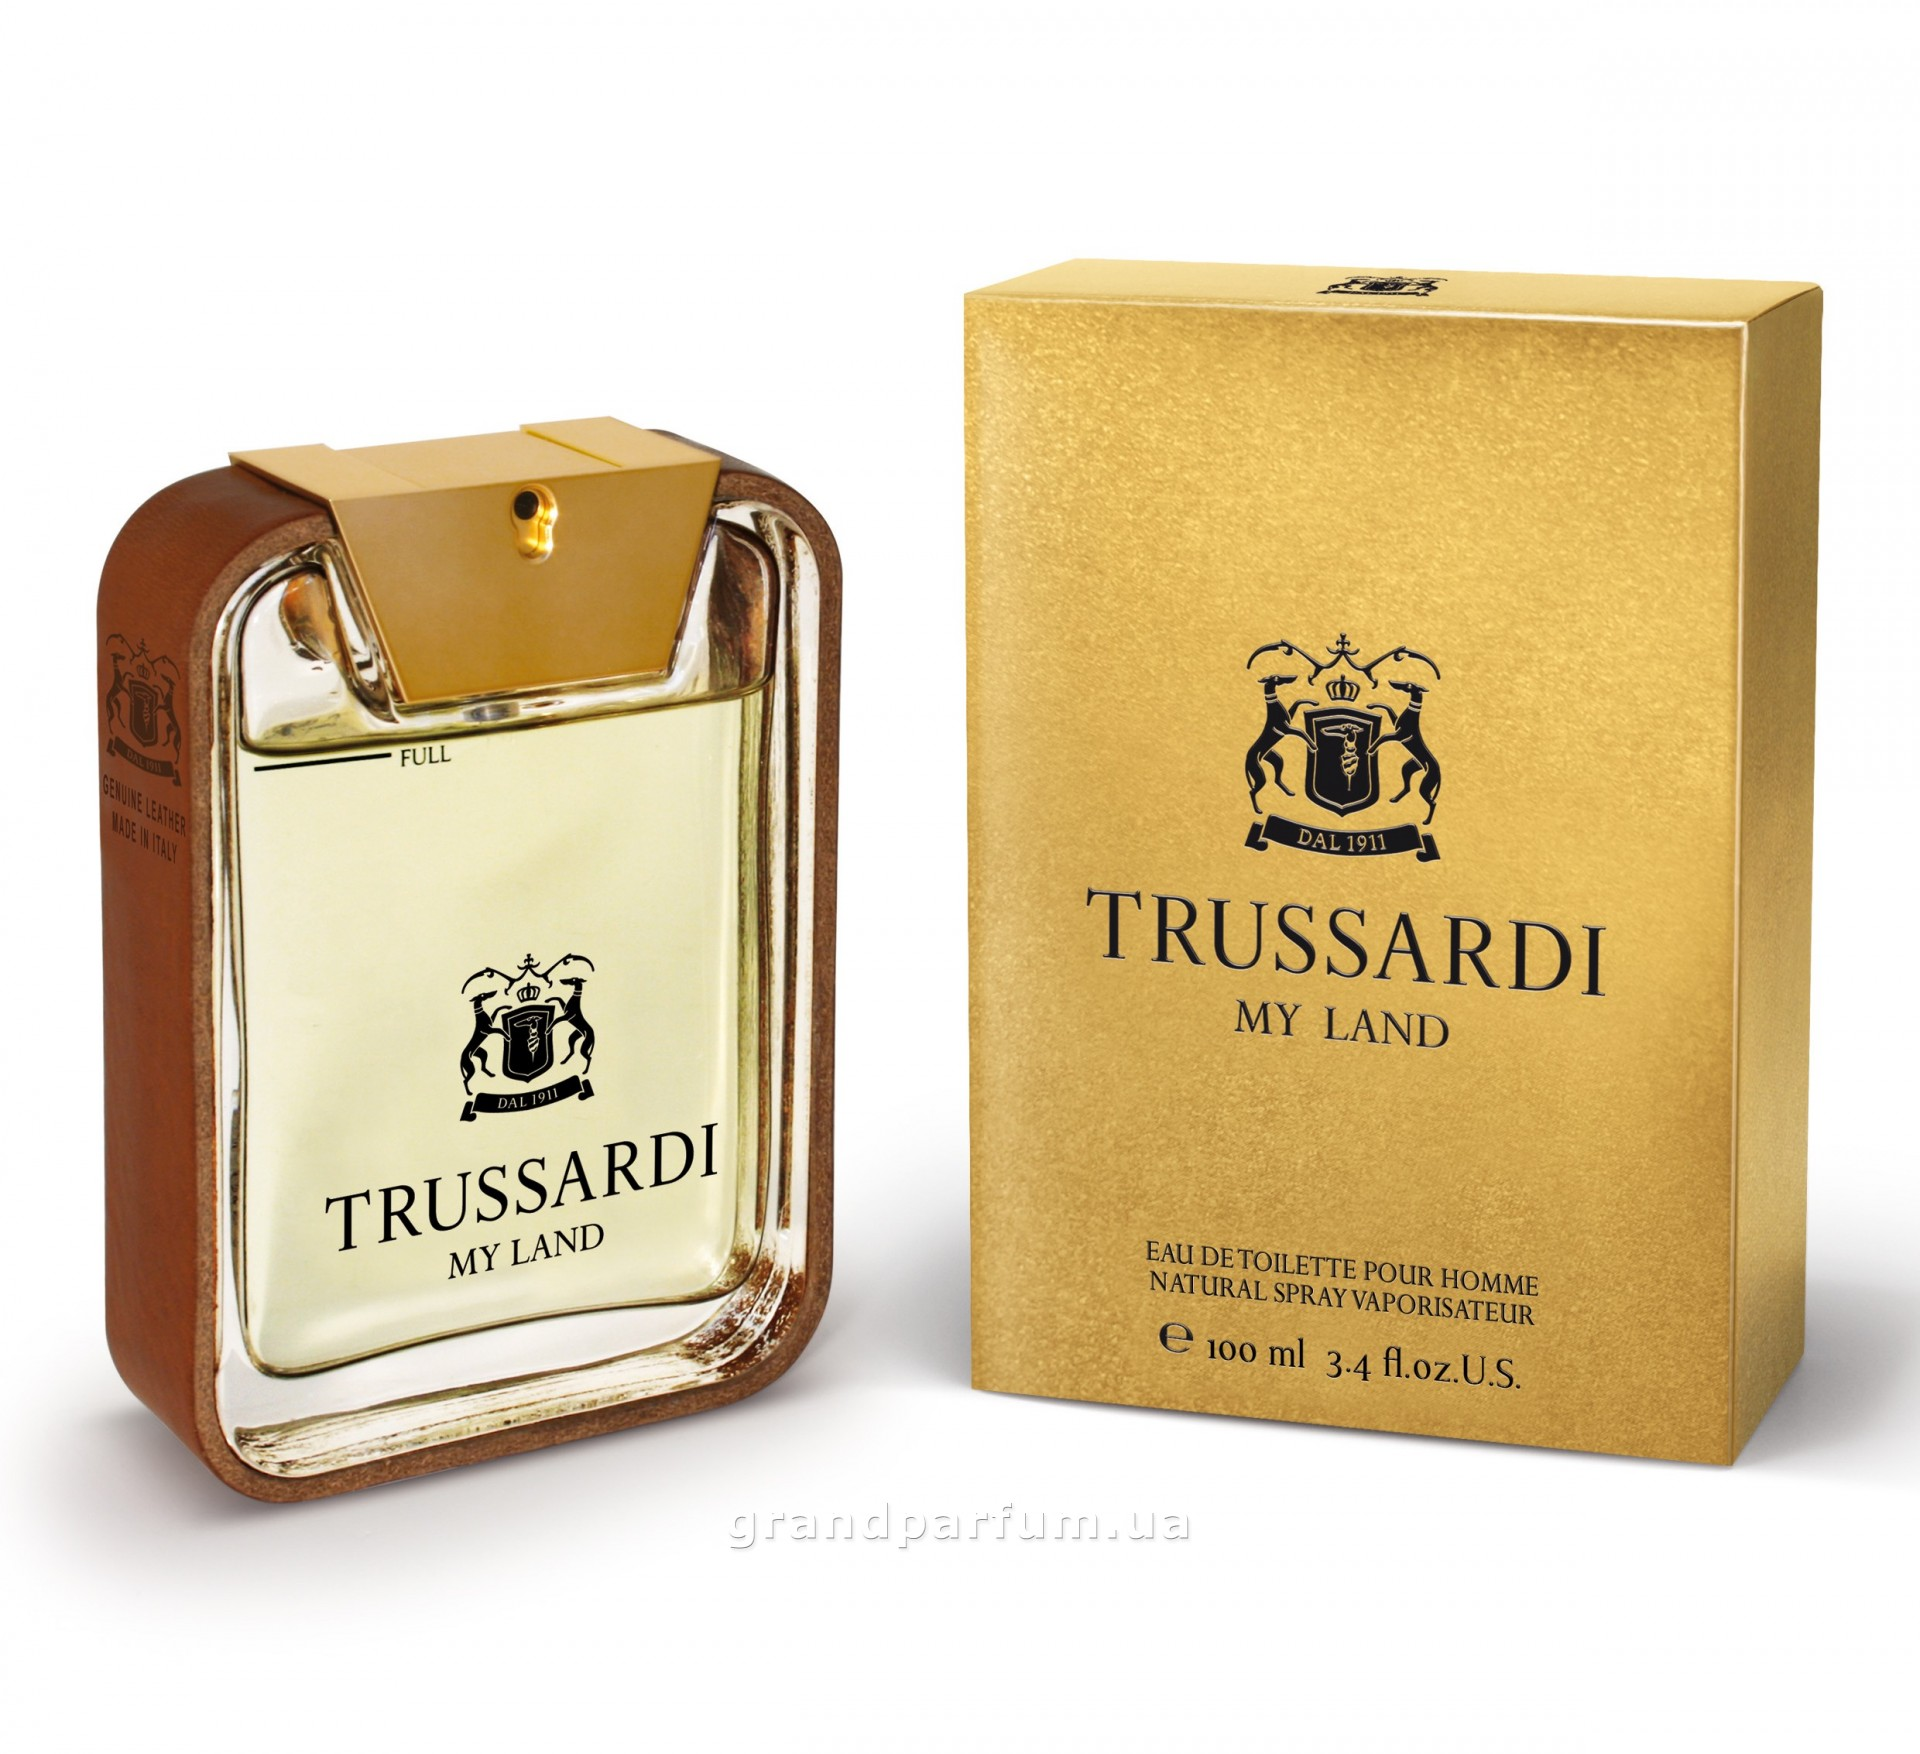 Купить Trussardi My Land от